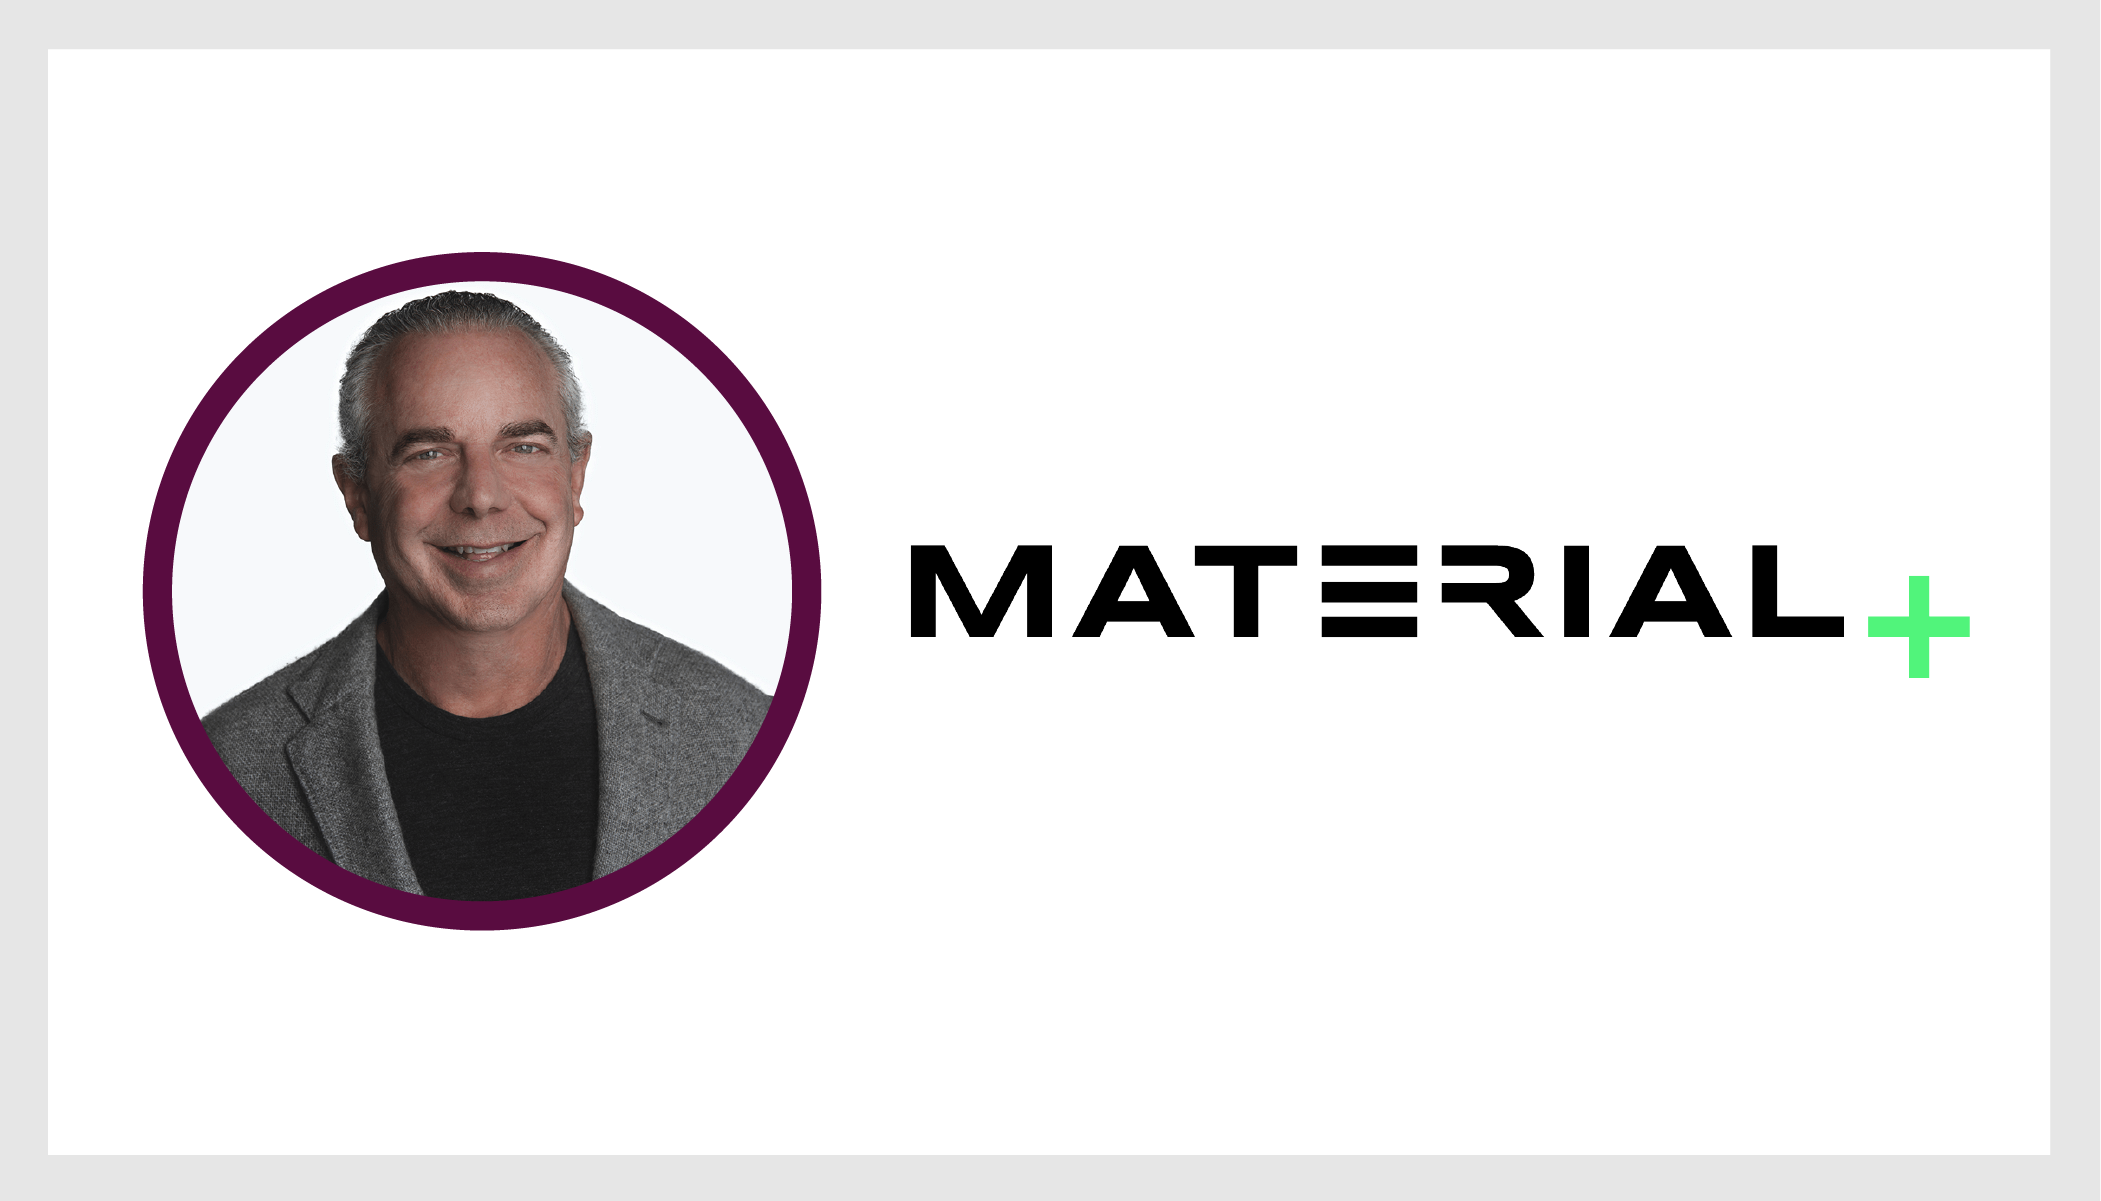 Dave Sackman, Chairman and CEO of Material